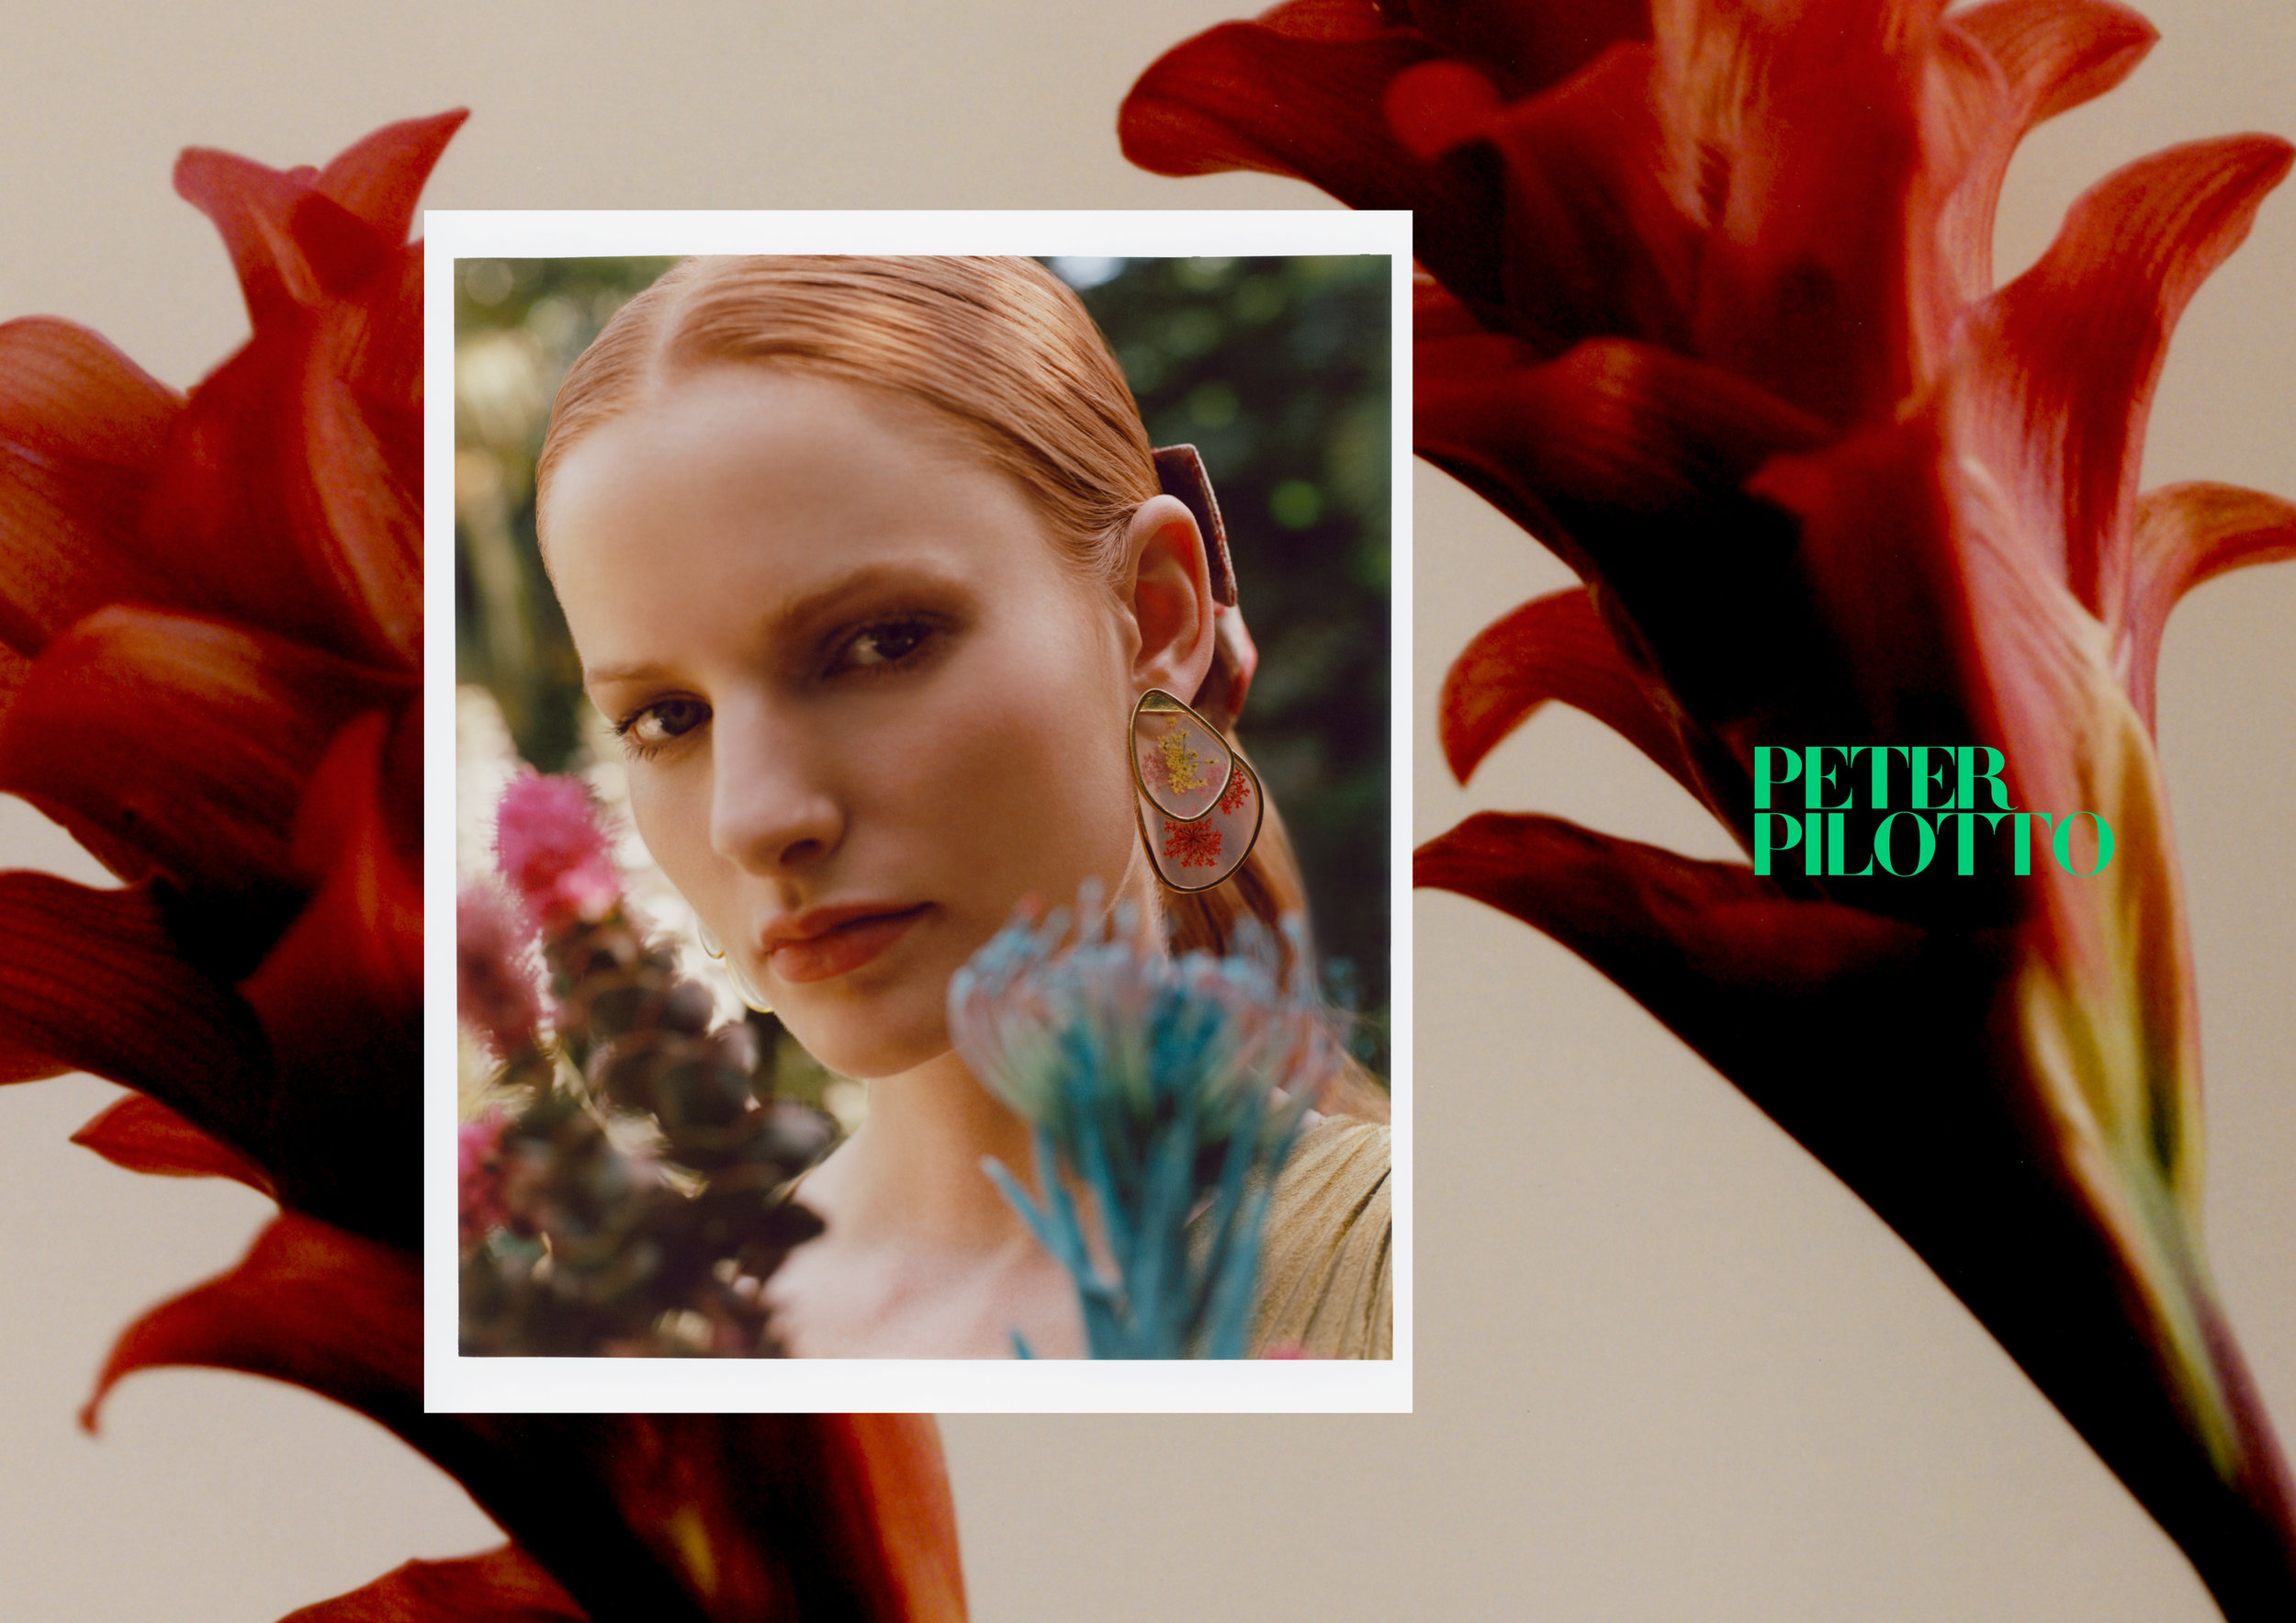 Peter_Pilotto_Exclusives_Composition_5.jpg